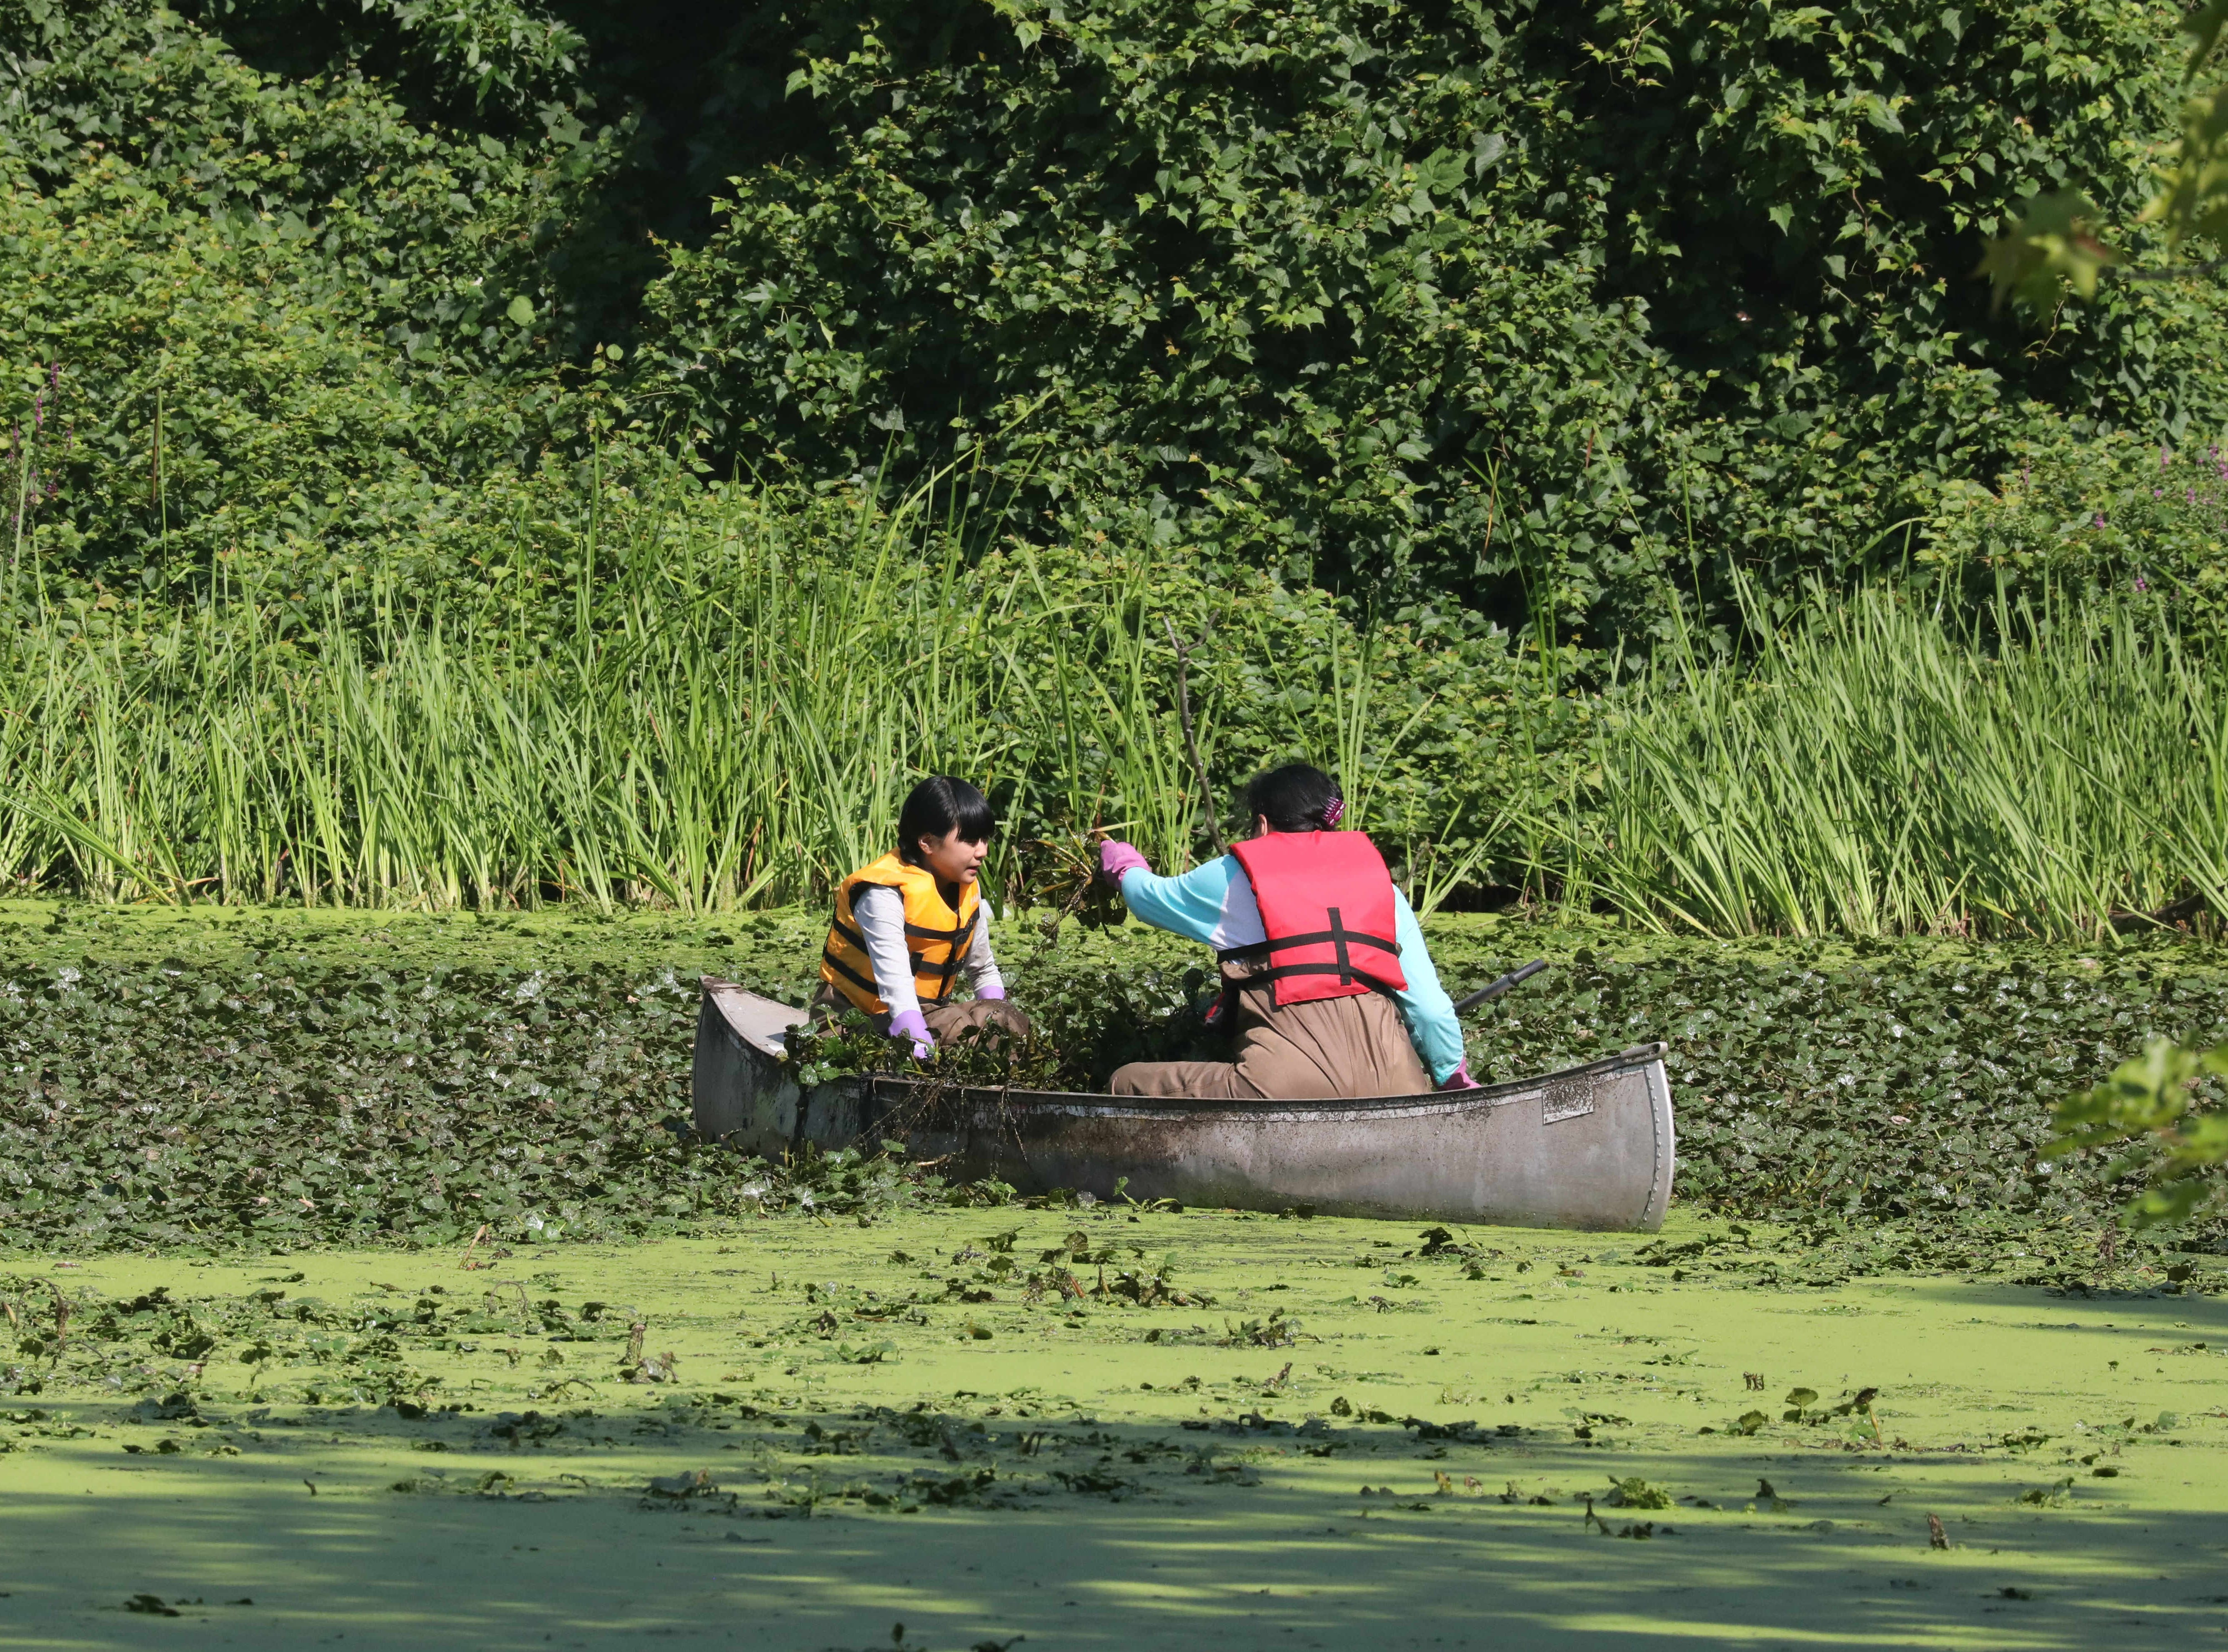 Volunteers Samantha Poy, 12 and Evelyn Poy from Sleepy Hollow assist The Westchester Parks Foundation collecting some invasive water chestnut plants from the lake at Tibbetts Brook Park in Yonkers, Aug. 8, 2018.